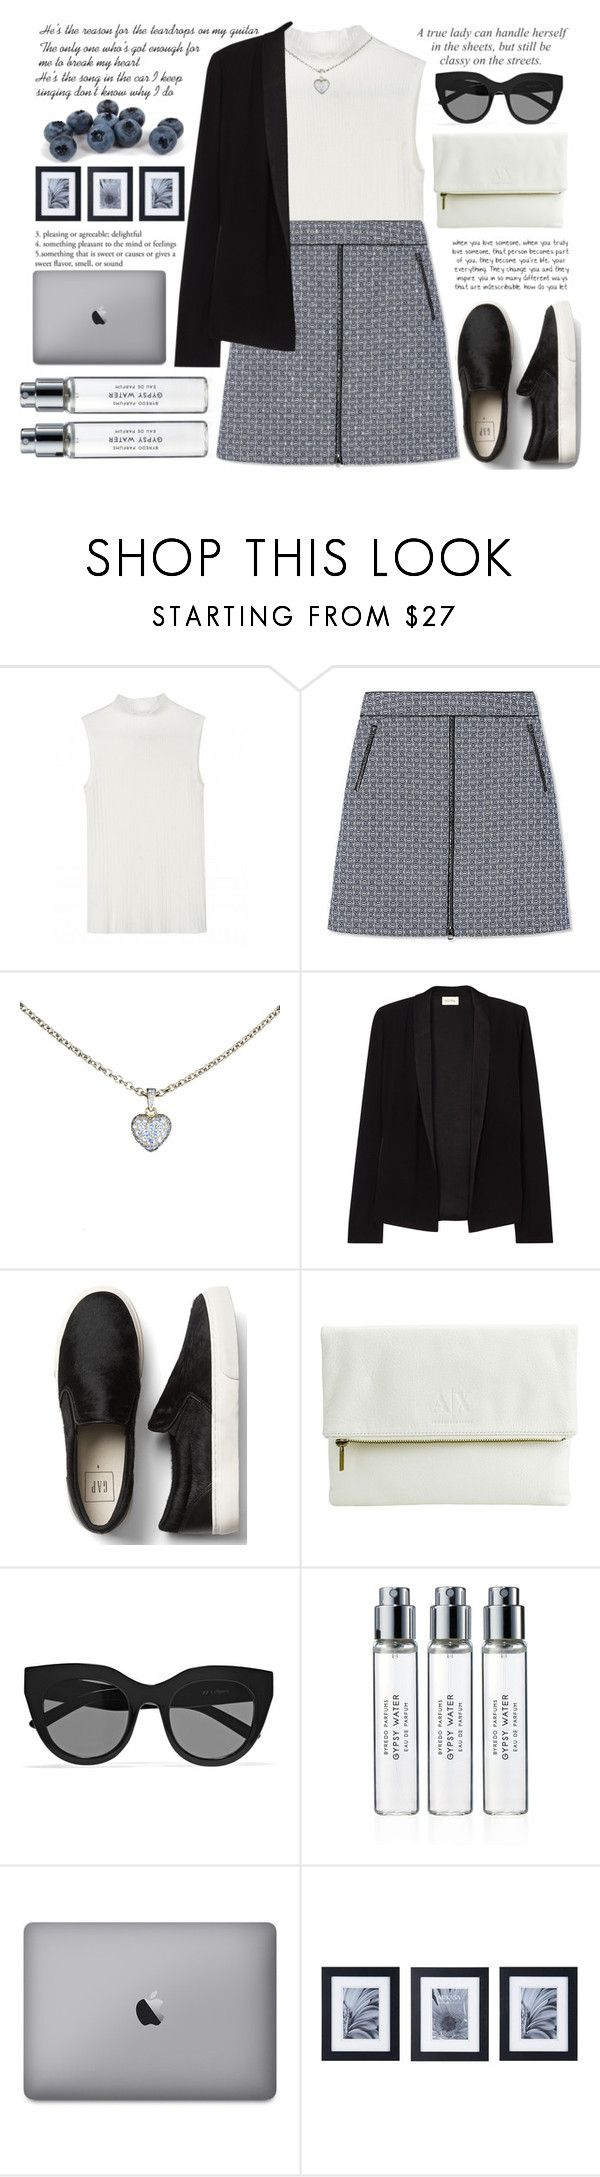 """He's the reason for the teardrops on my guitar"" by itaylorswift13 ❤ liked on Polyvore featuring Tory Burch, Cartier, American Vintage, Armani Exchange, Le Specs, Byredo and Mikasa"